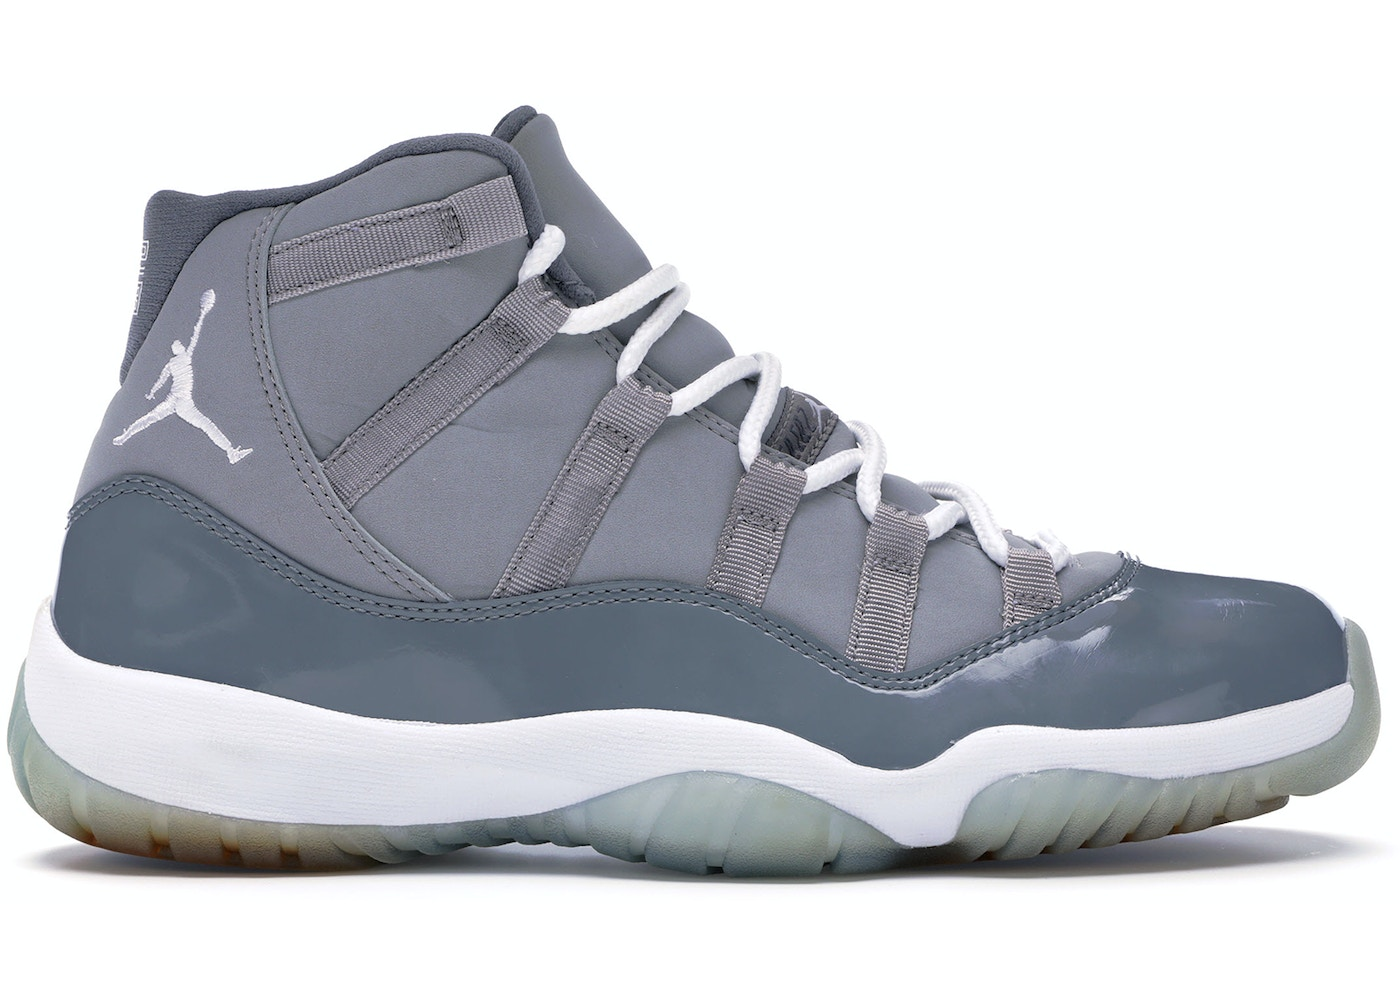 big sale a0be9 575c4 Jordan 11 Retro Cool Grey (2010) - 378037-001